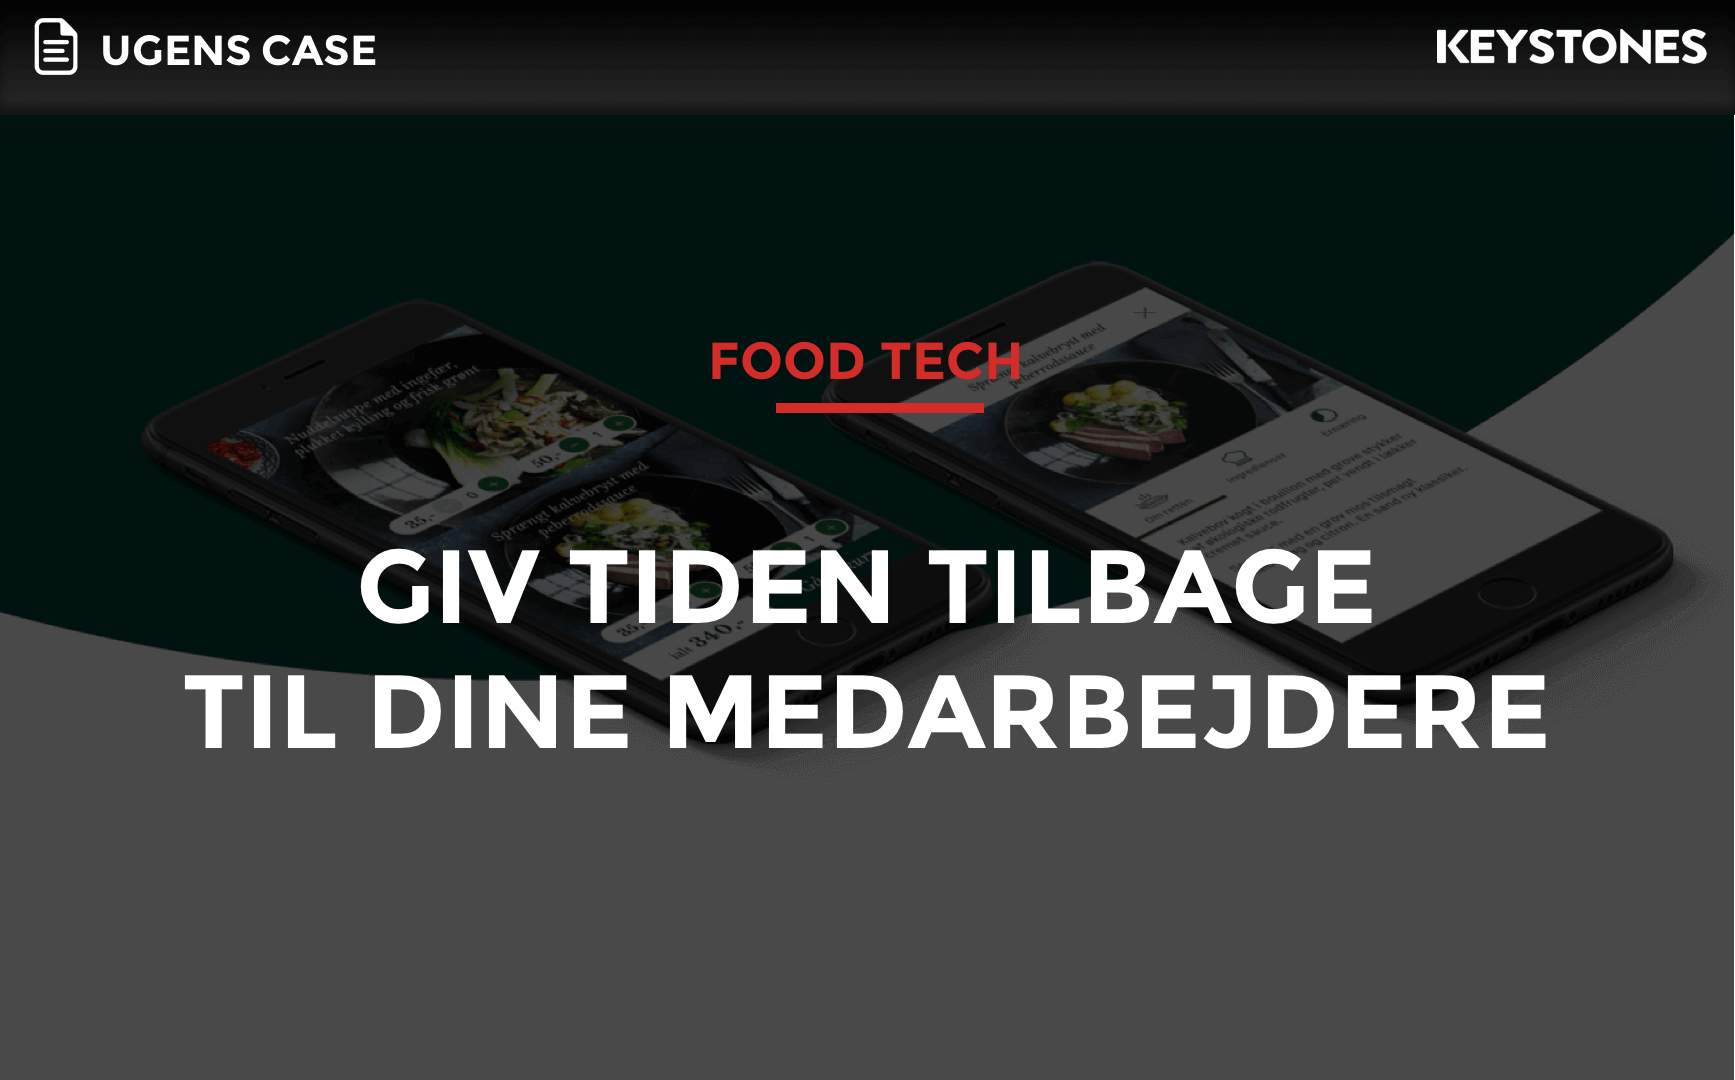 Ugens case - Foodtech